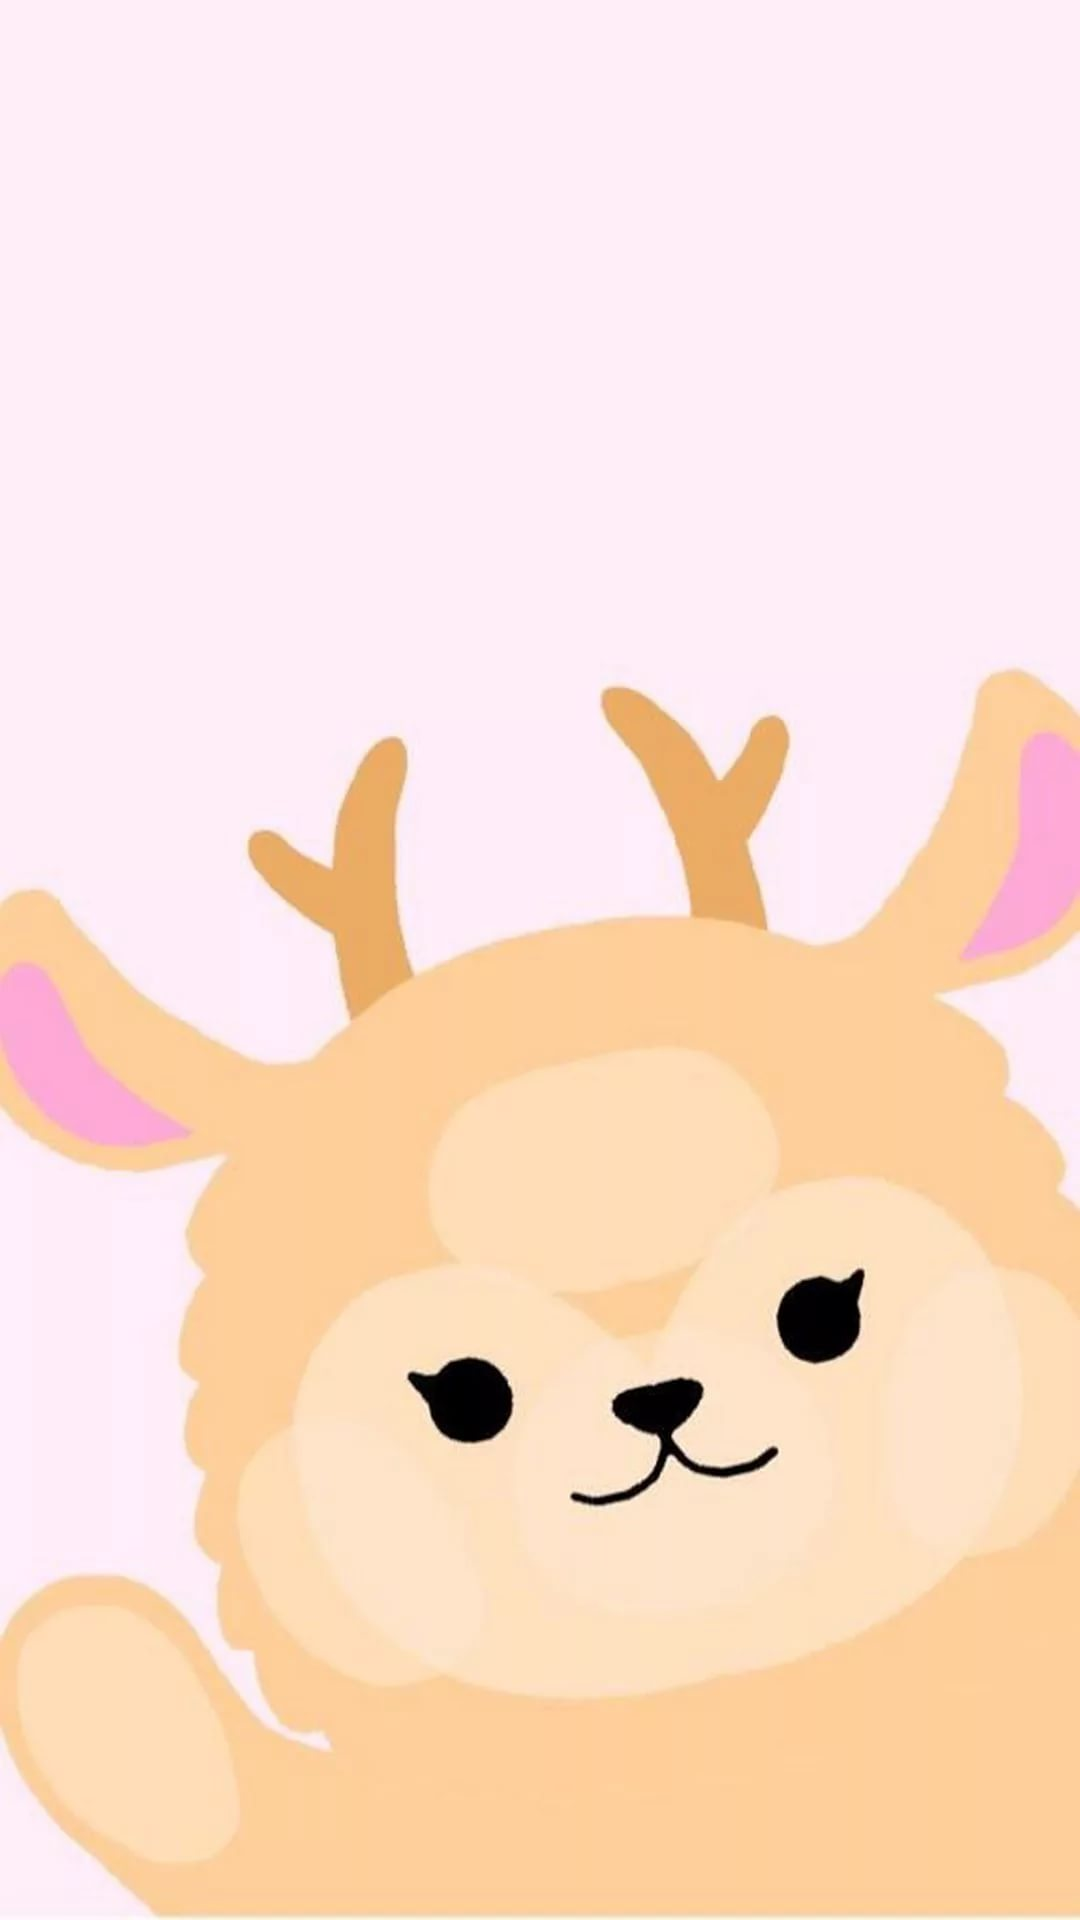 Cute iPhone wallpaper